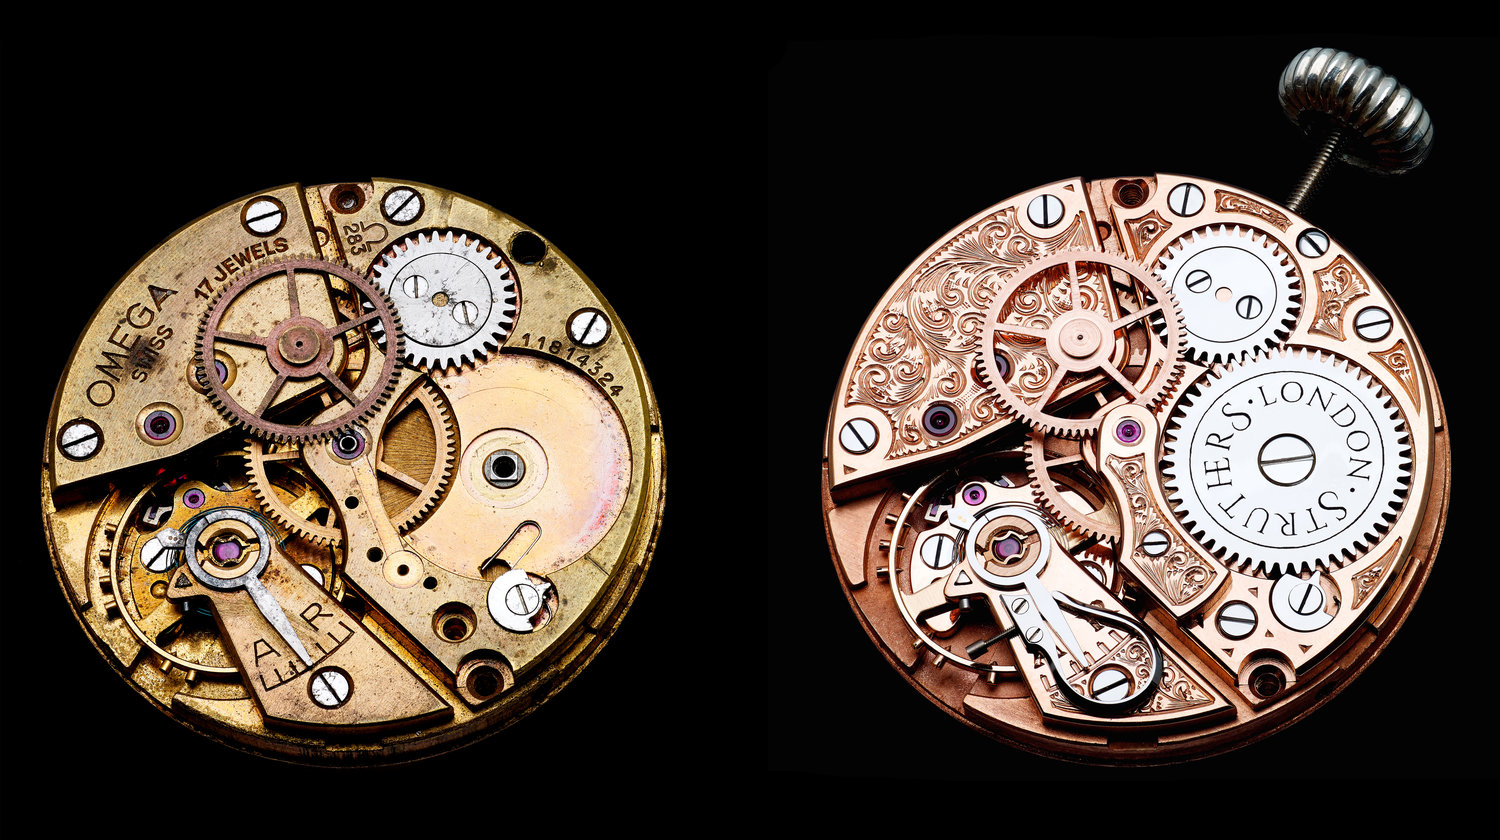 Struthers watchmaking